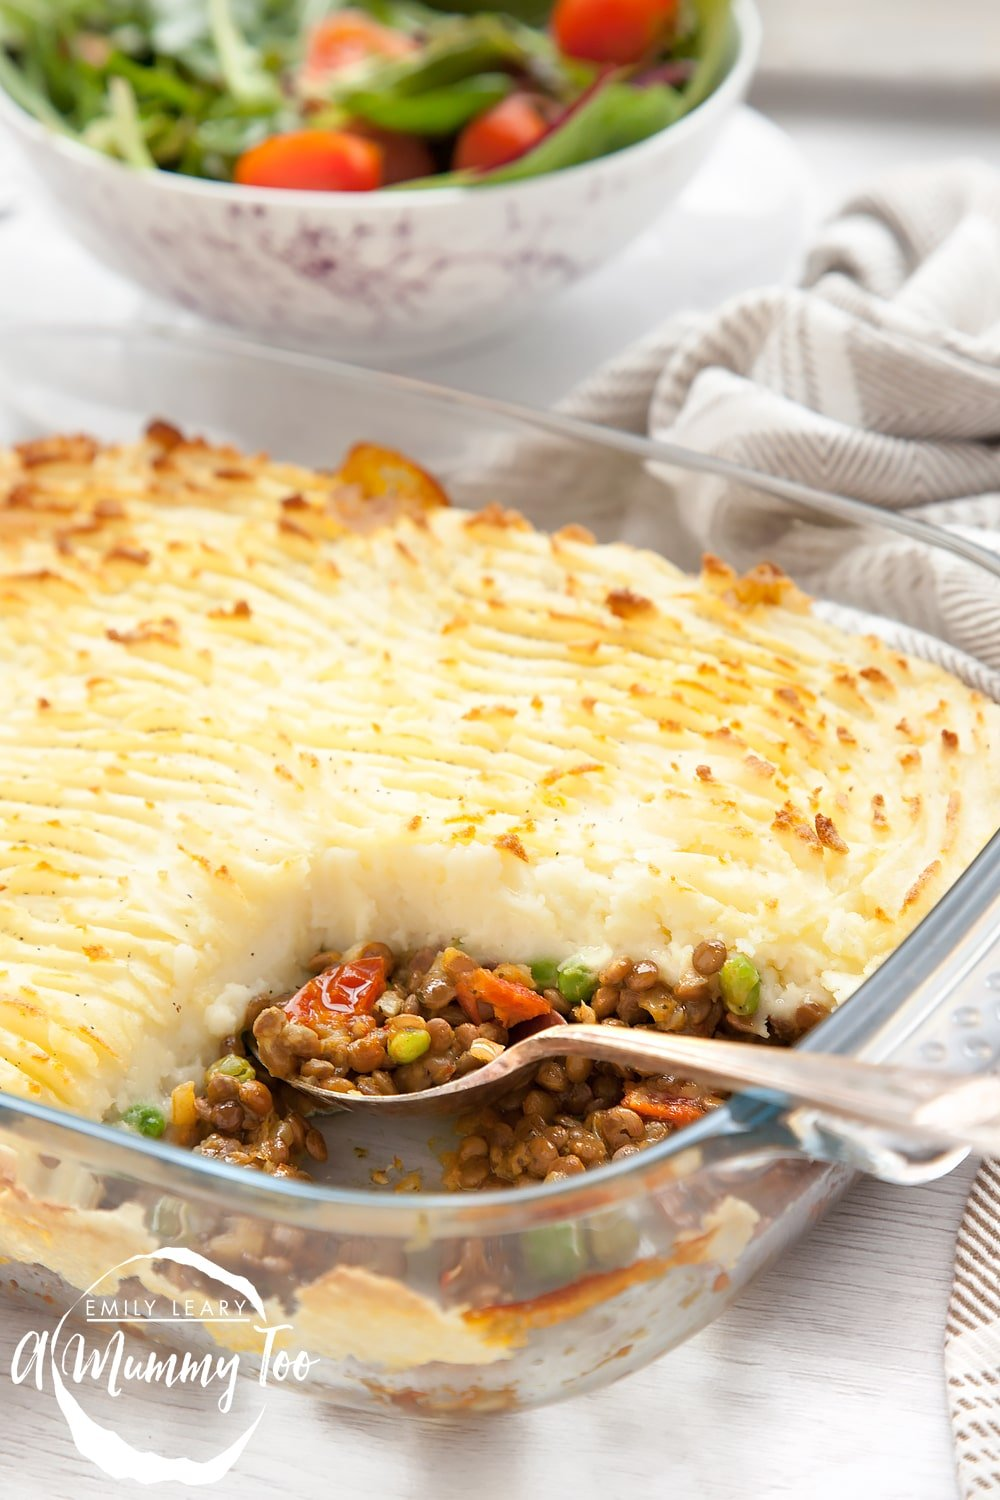 A simple vegetarian shepherds pie made with spicy lentils and a creamy mashed potato topping. This really clever recipe uses just THREE frozen products to put together a super quick, healthy and delicious meal.